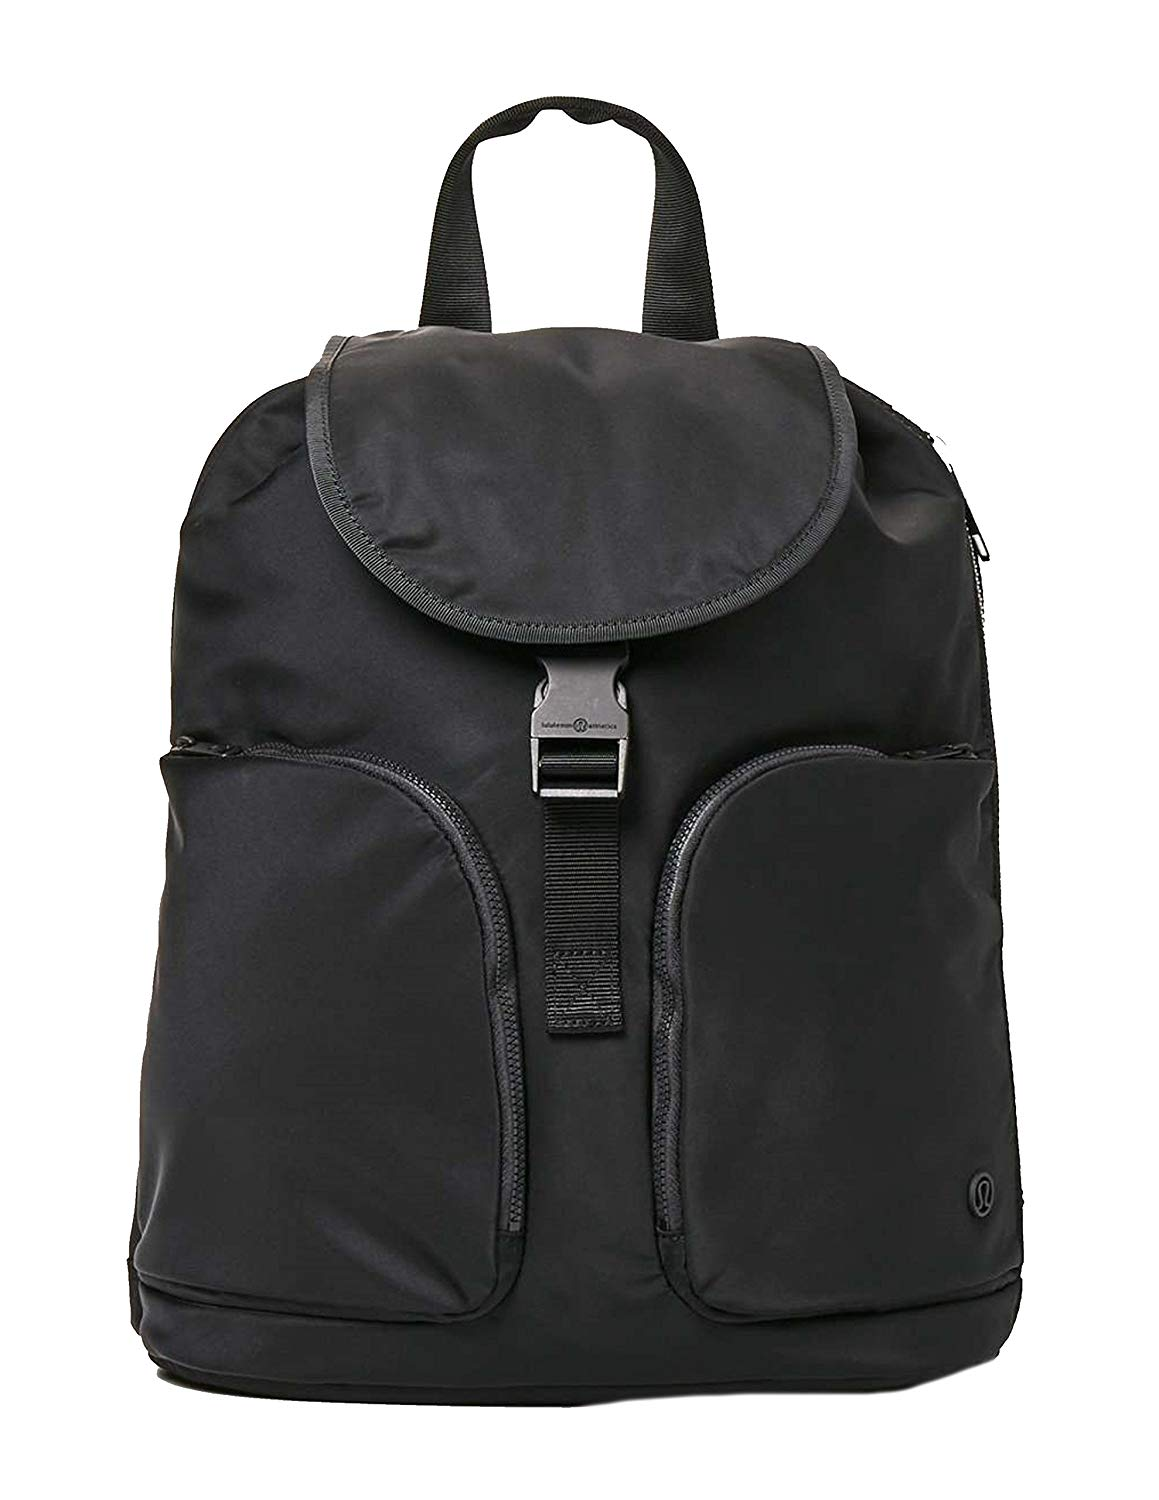 Lululemon Carry Onward Rucksack Backpack